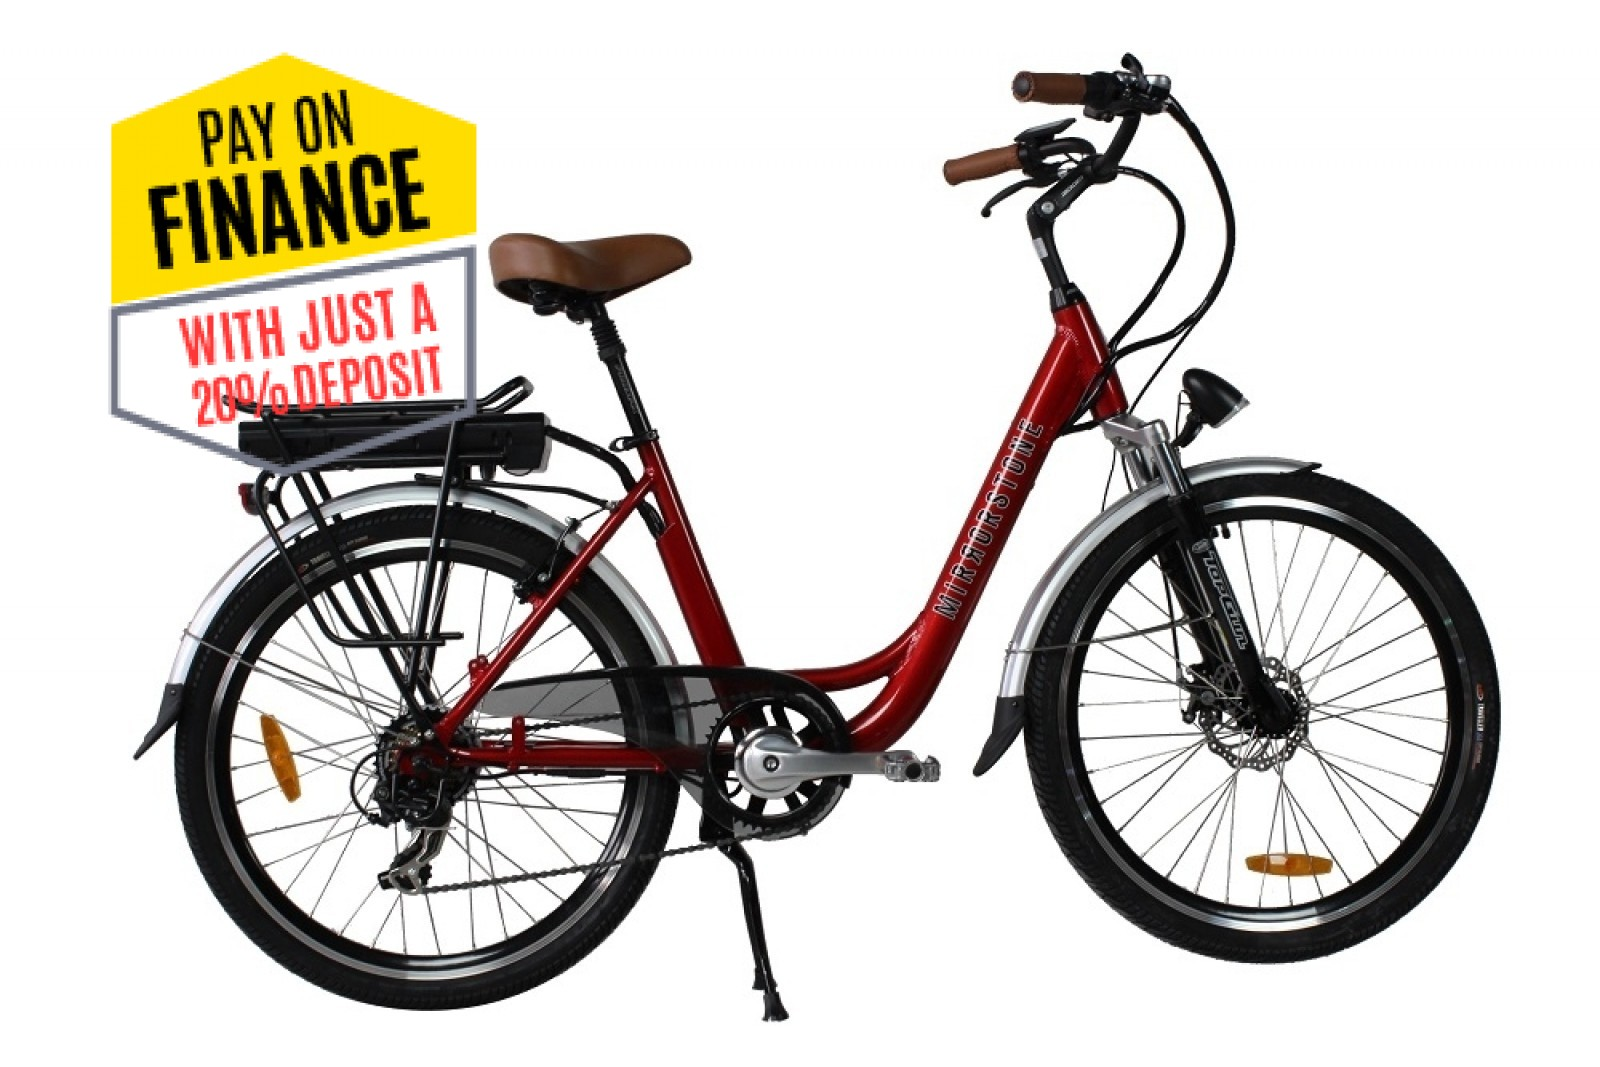 Sprint Electric Bike Cherry Red Wheels - Limited Stock!